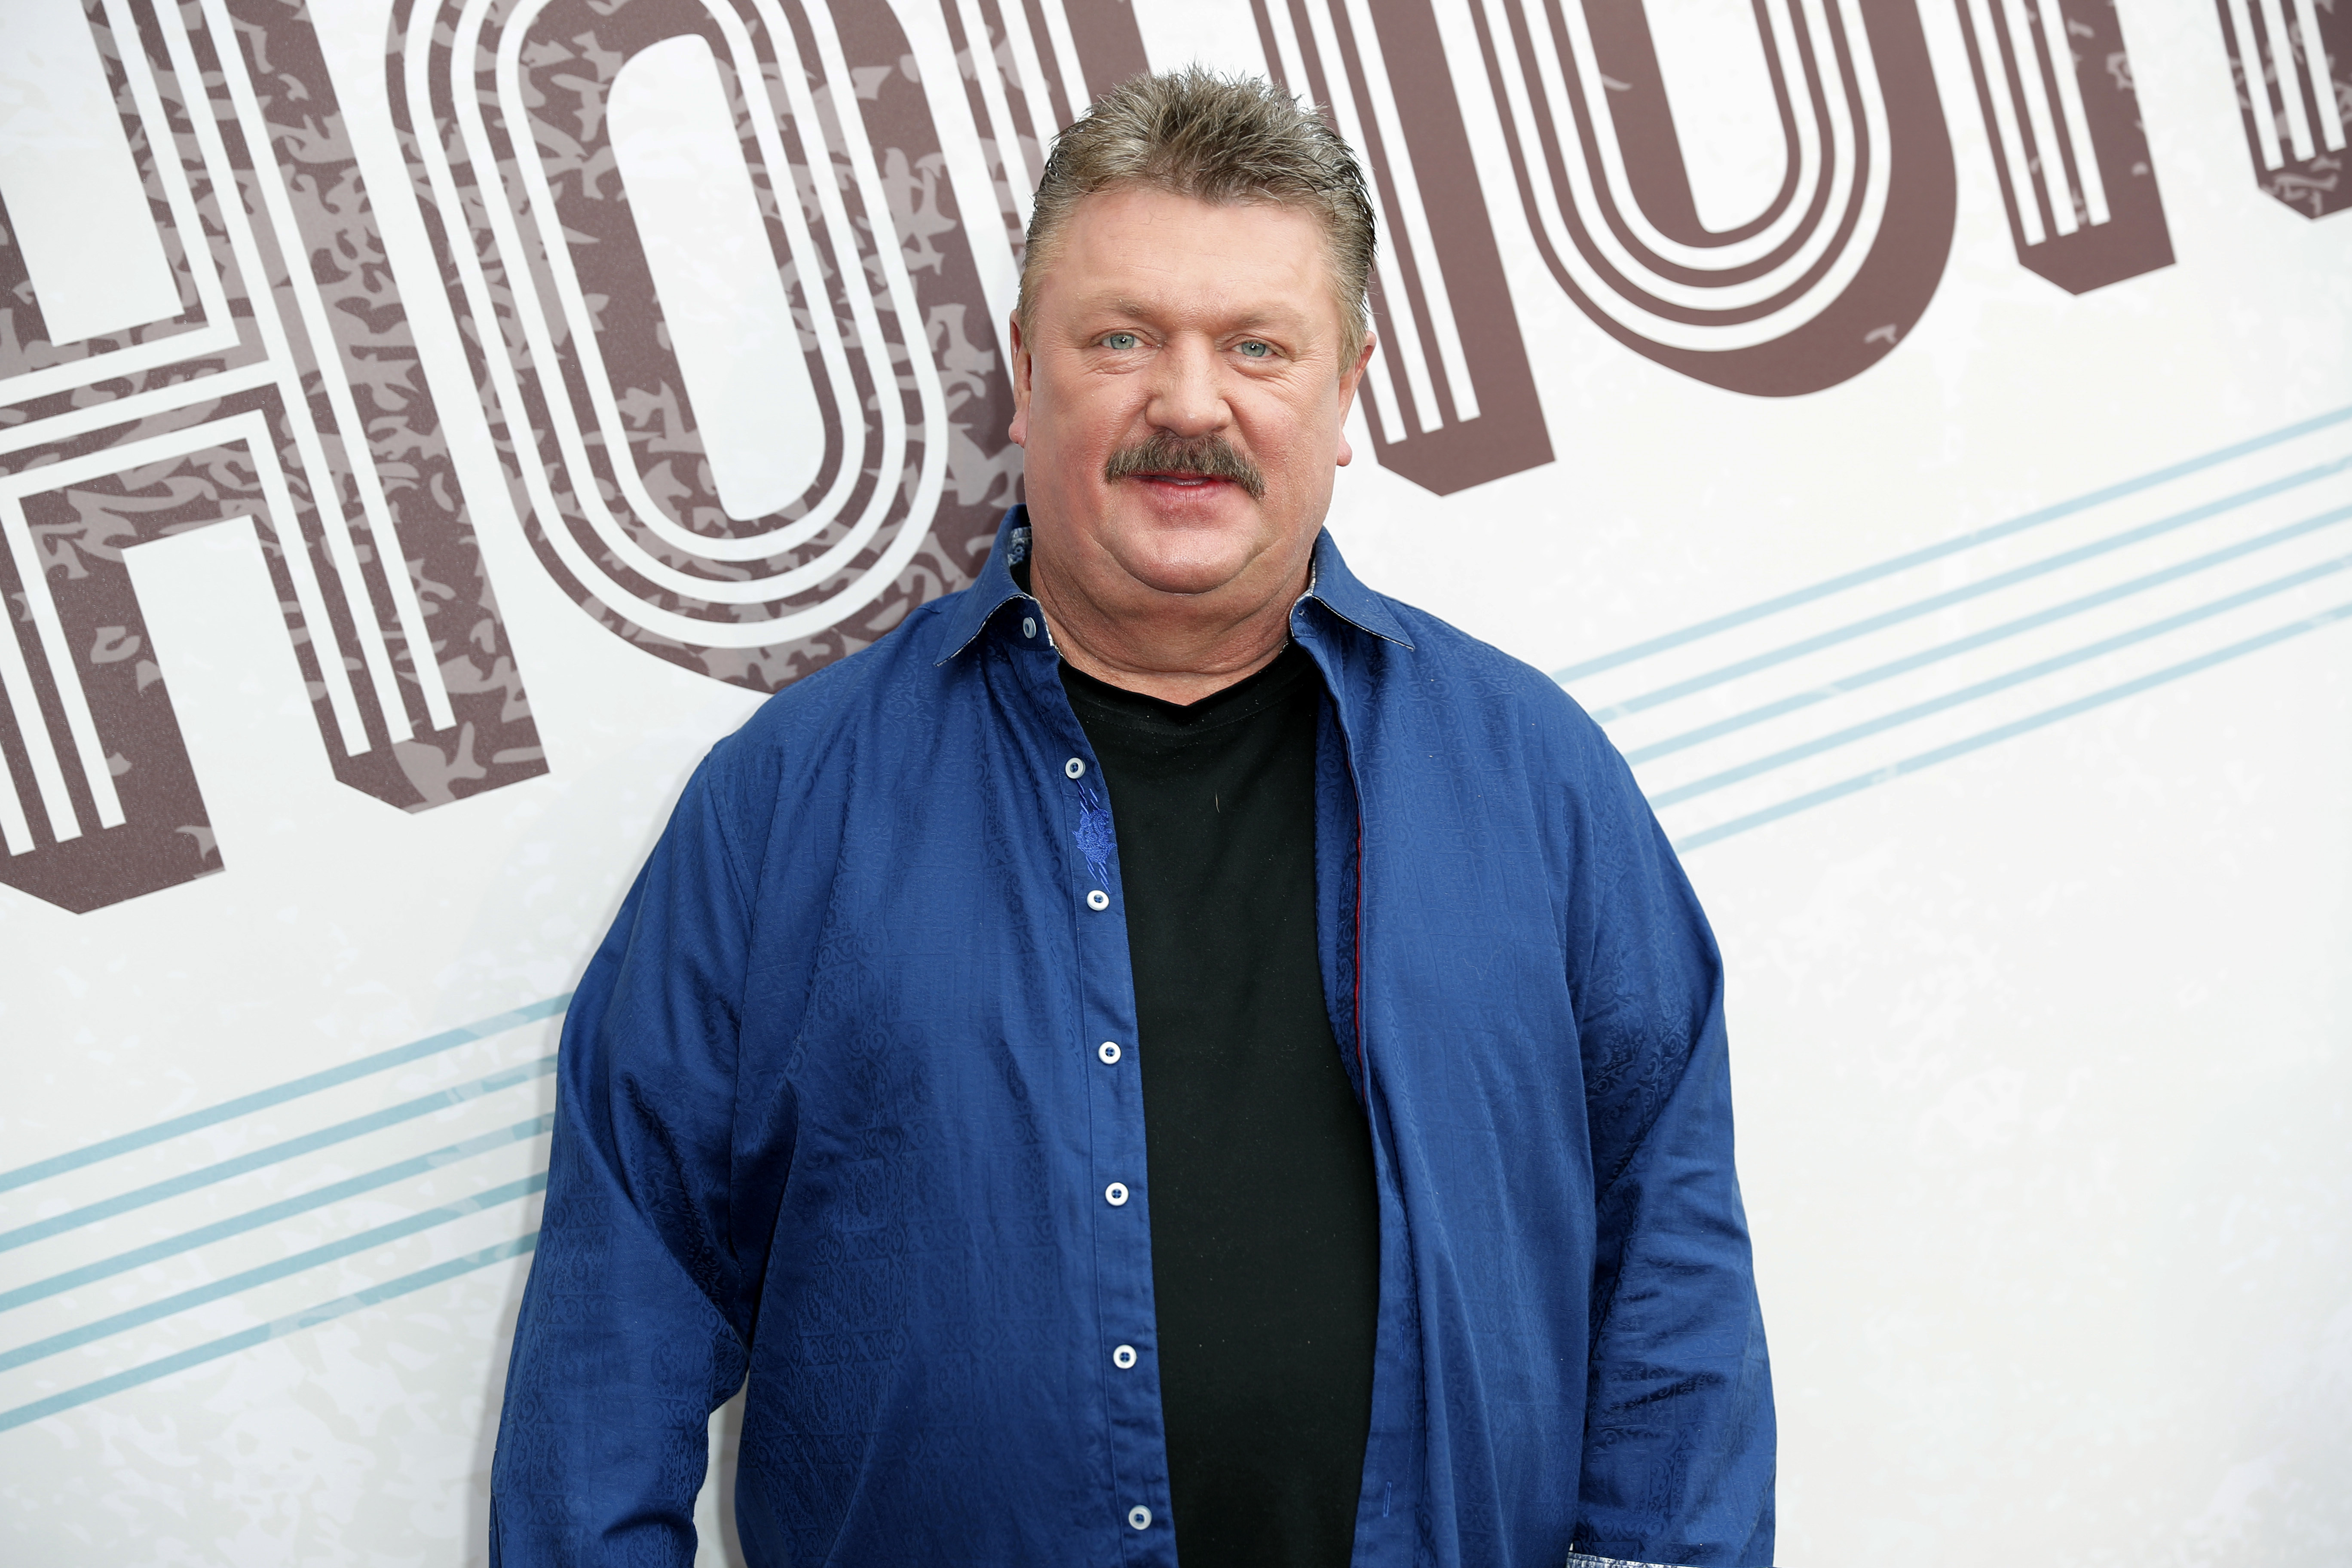 Country singer Joe Diffie attends the 12th annual ACM Honors in Nashville, Tenn. on Aug. 22, 2018.